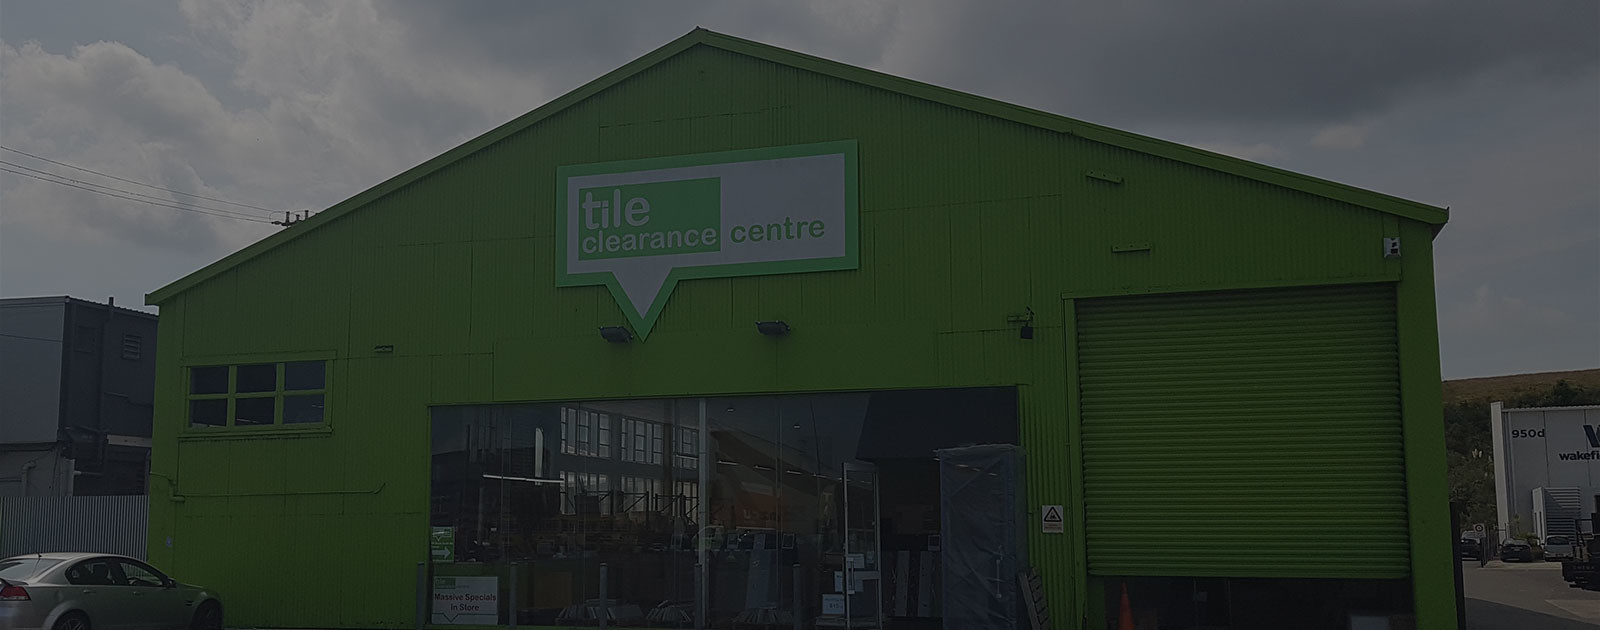 The Tile Clearance Centre